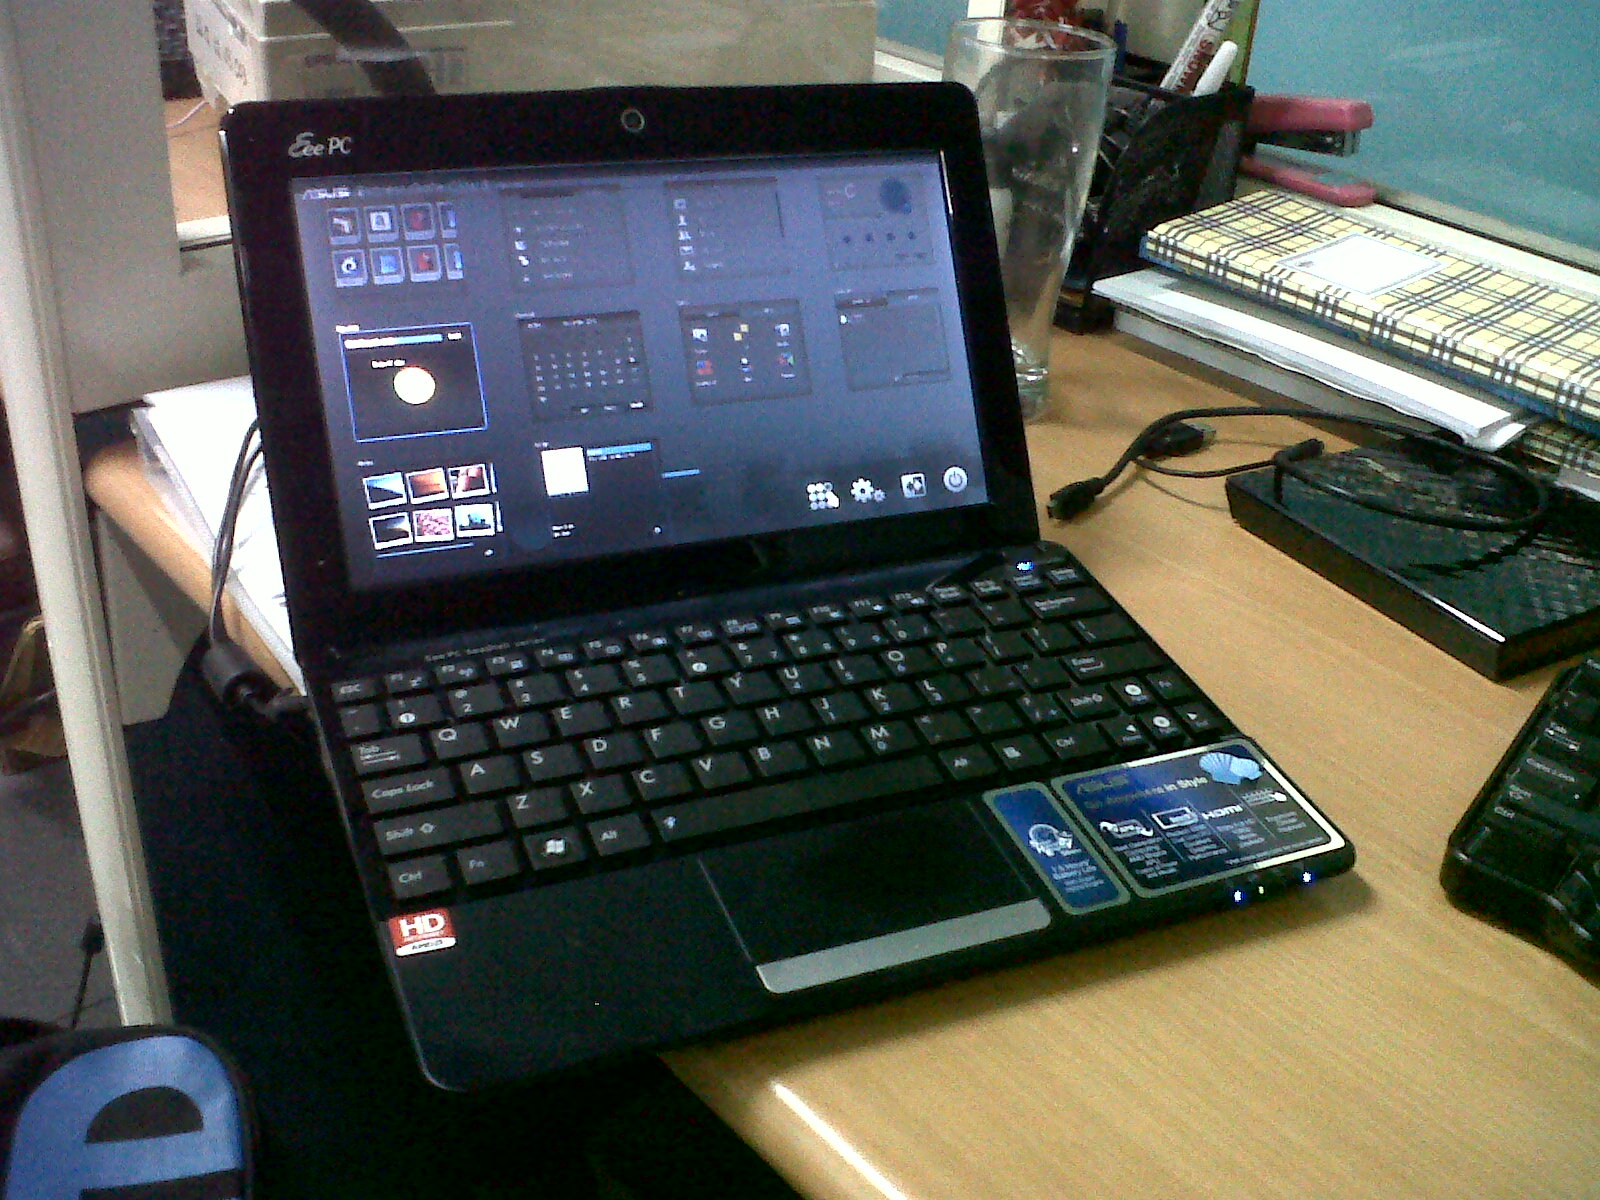 Asus eee pc 2g surf drivers xp free download zololesoft.